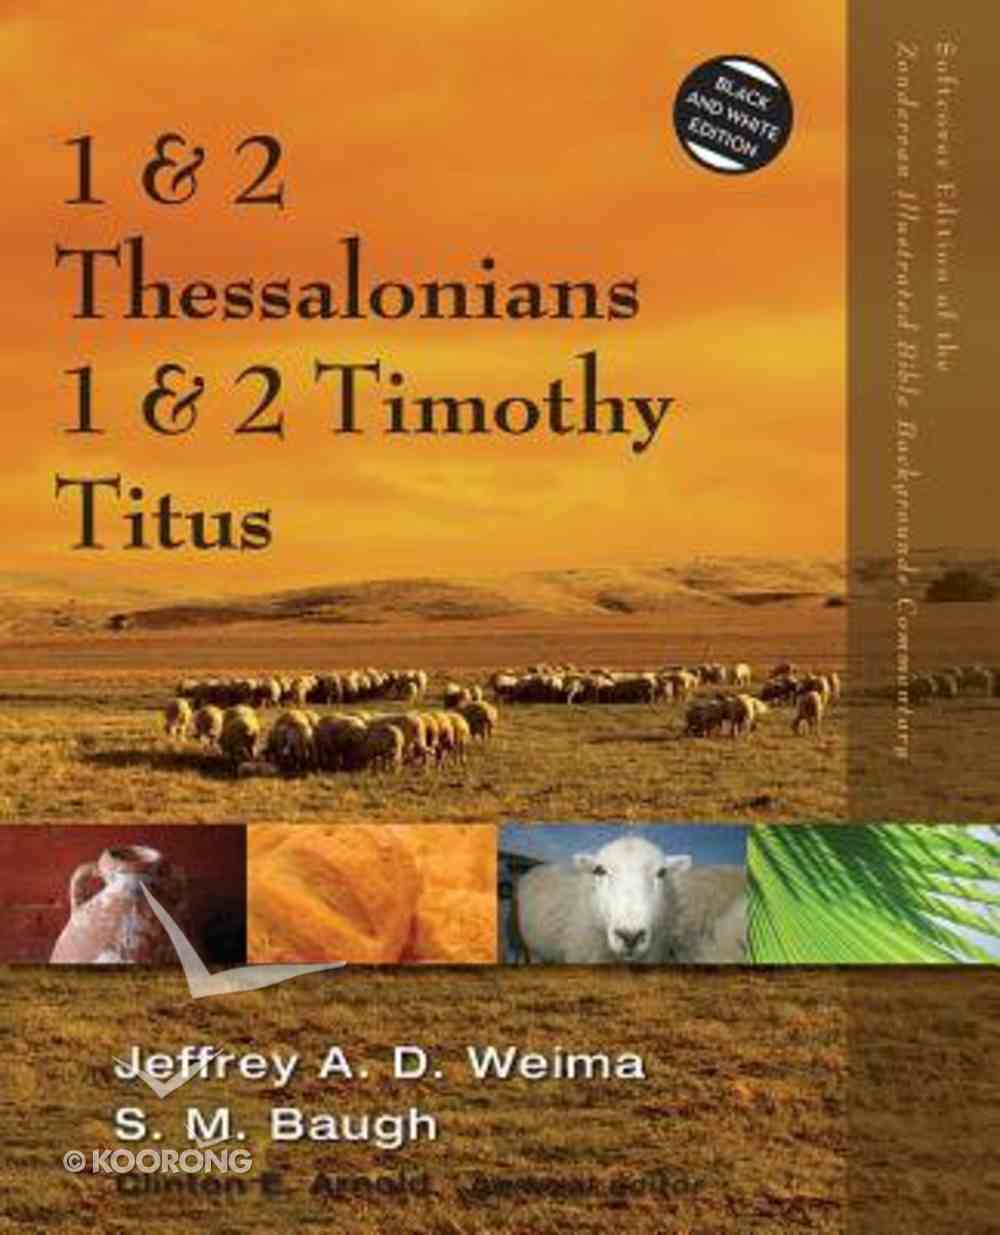 1 & 2 Thessalonians, 1 & 2 Timothy, Titus (Zondervan Illustrated Bible Backgrounds Commentary Series) Paperback